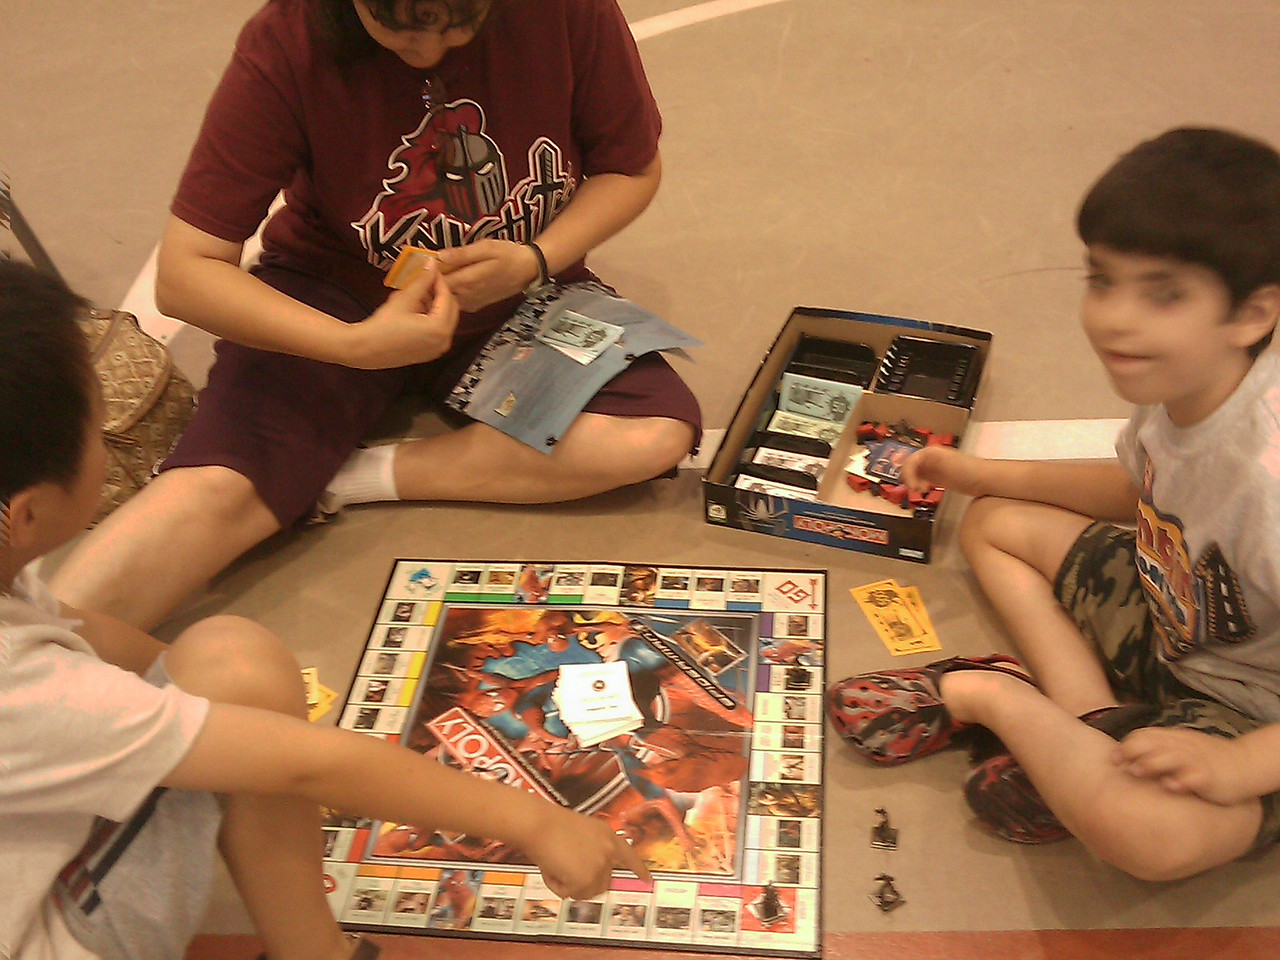 The Lark Branch of the McAllen Public Library hosted a board game extravaganza on July 17th, from 1:30 to 3:30pm at the Lark Community Center gym.